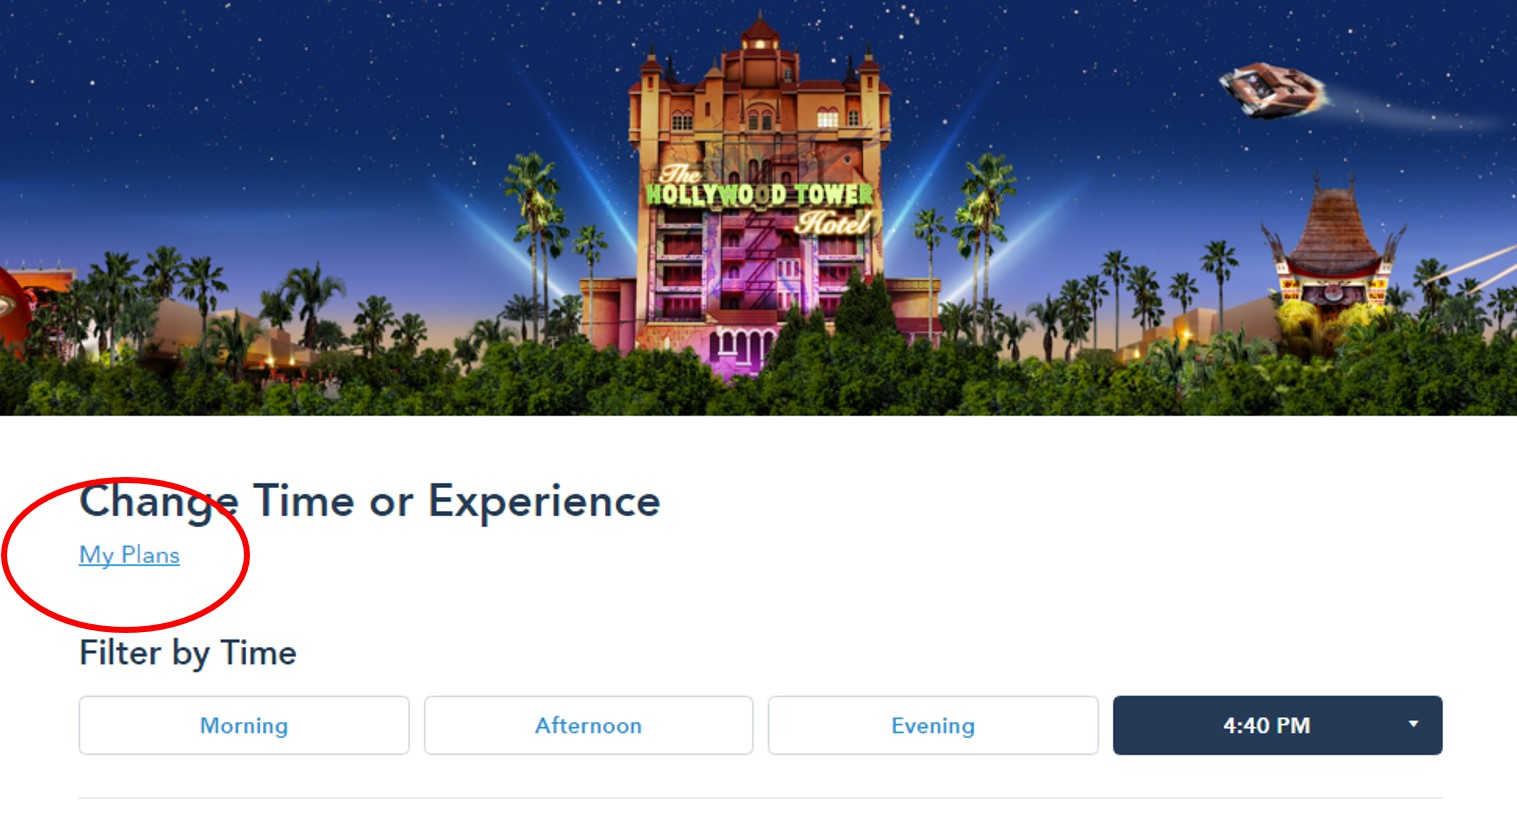 My Plans for FastPass+ from yourfirstvisit.net